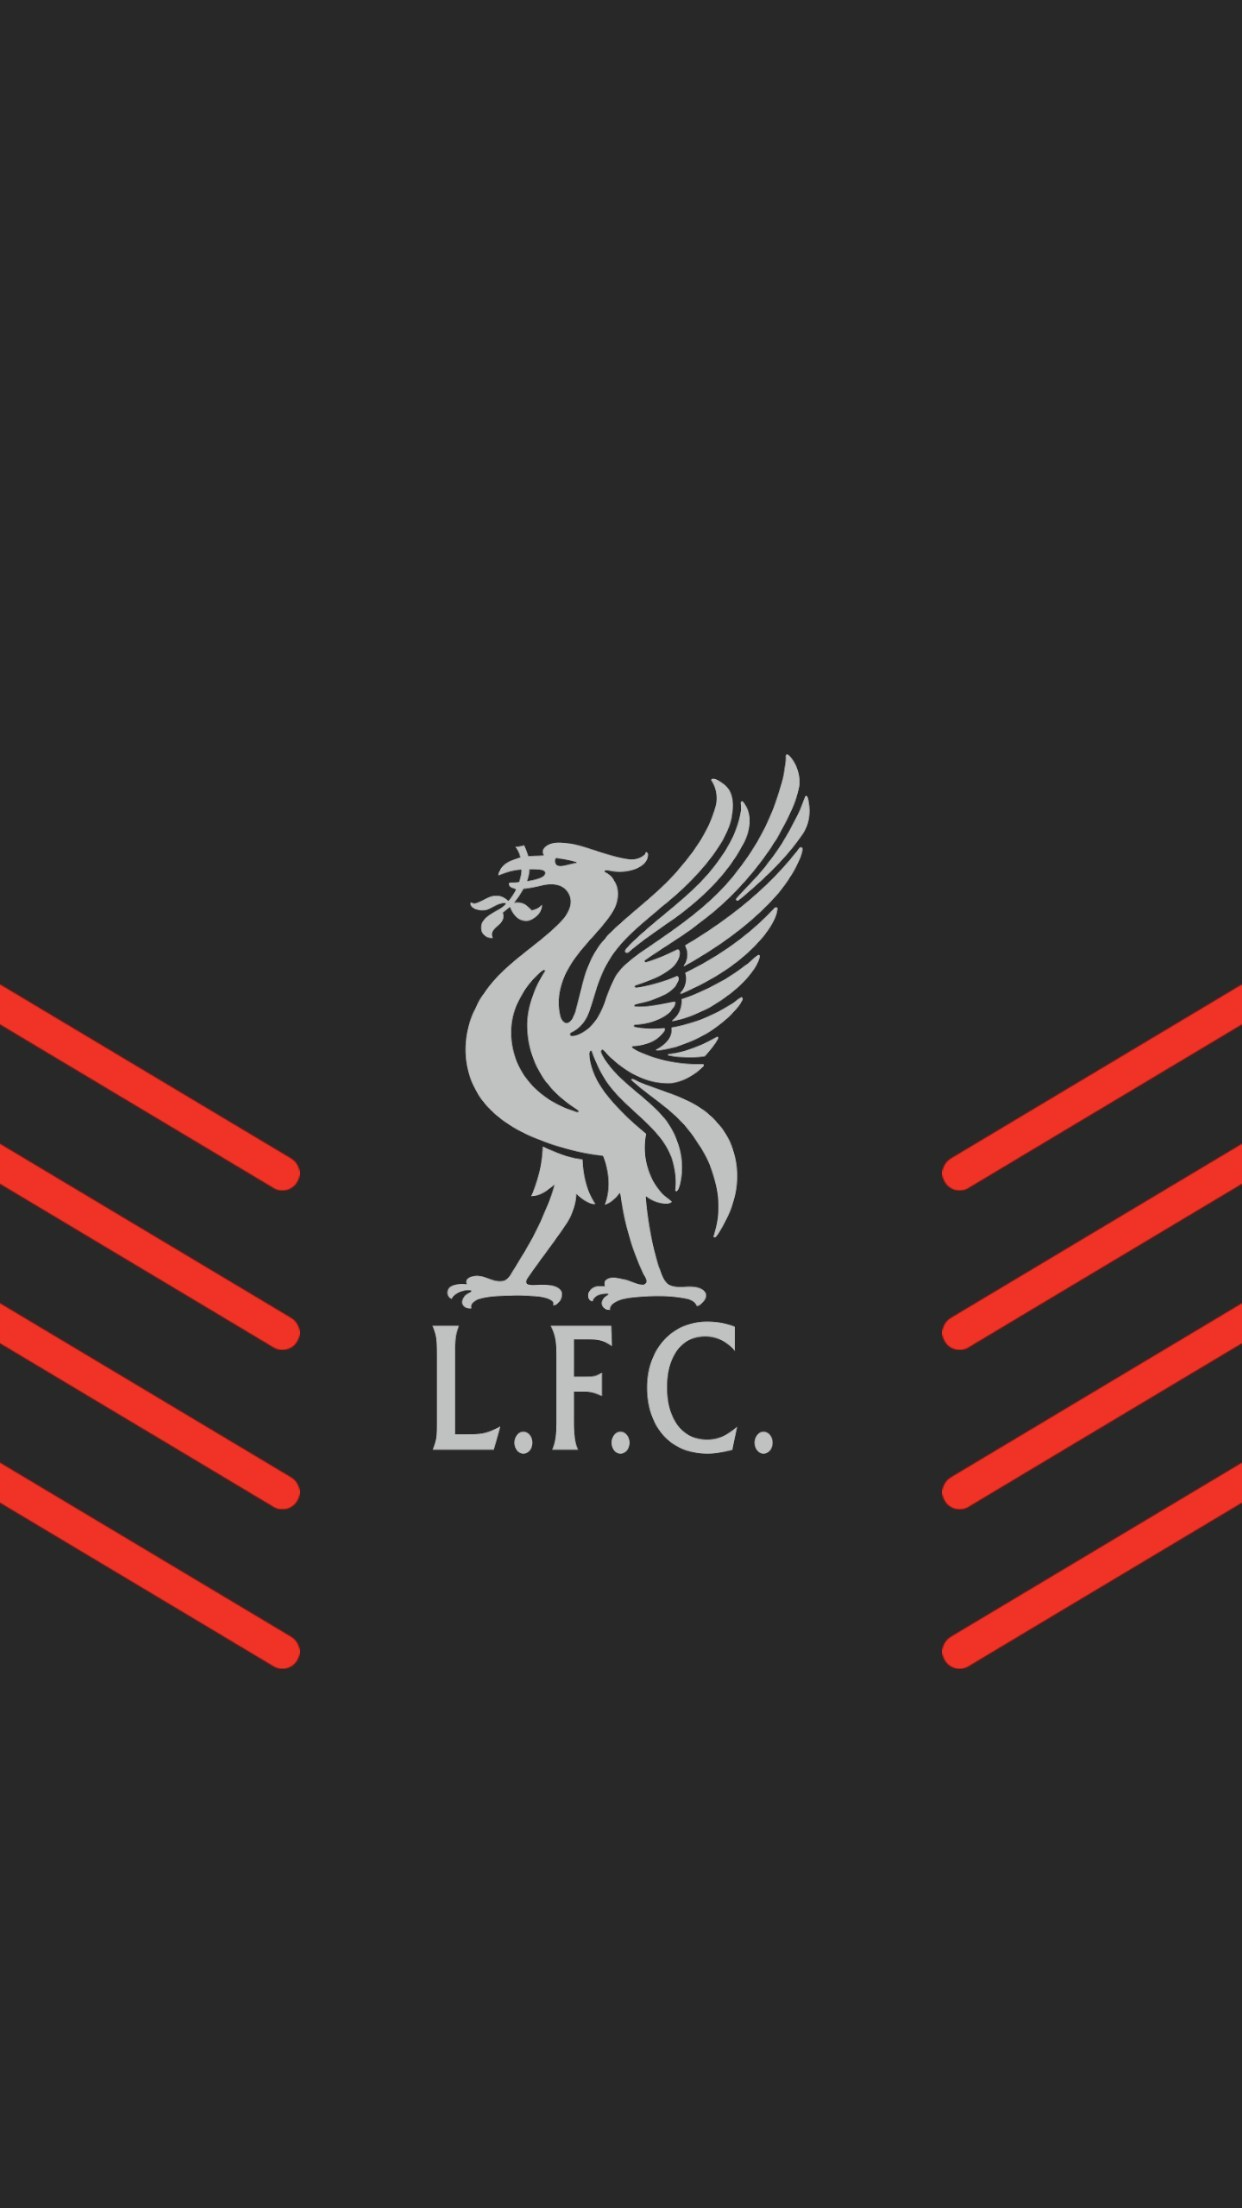 64 Lfc Wallpapers on WallpaperPlay 1242x2208